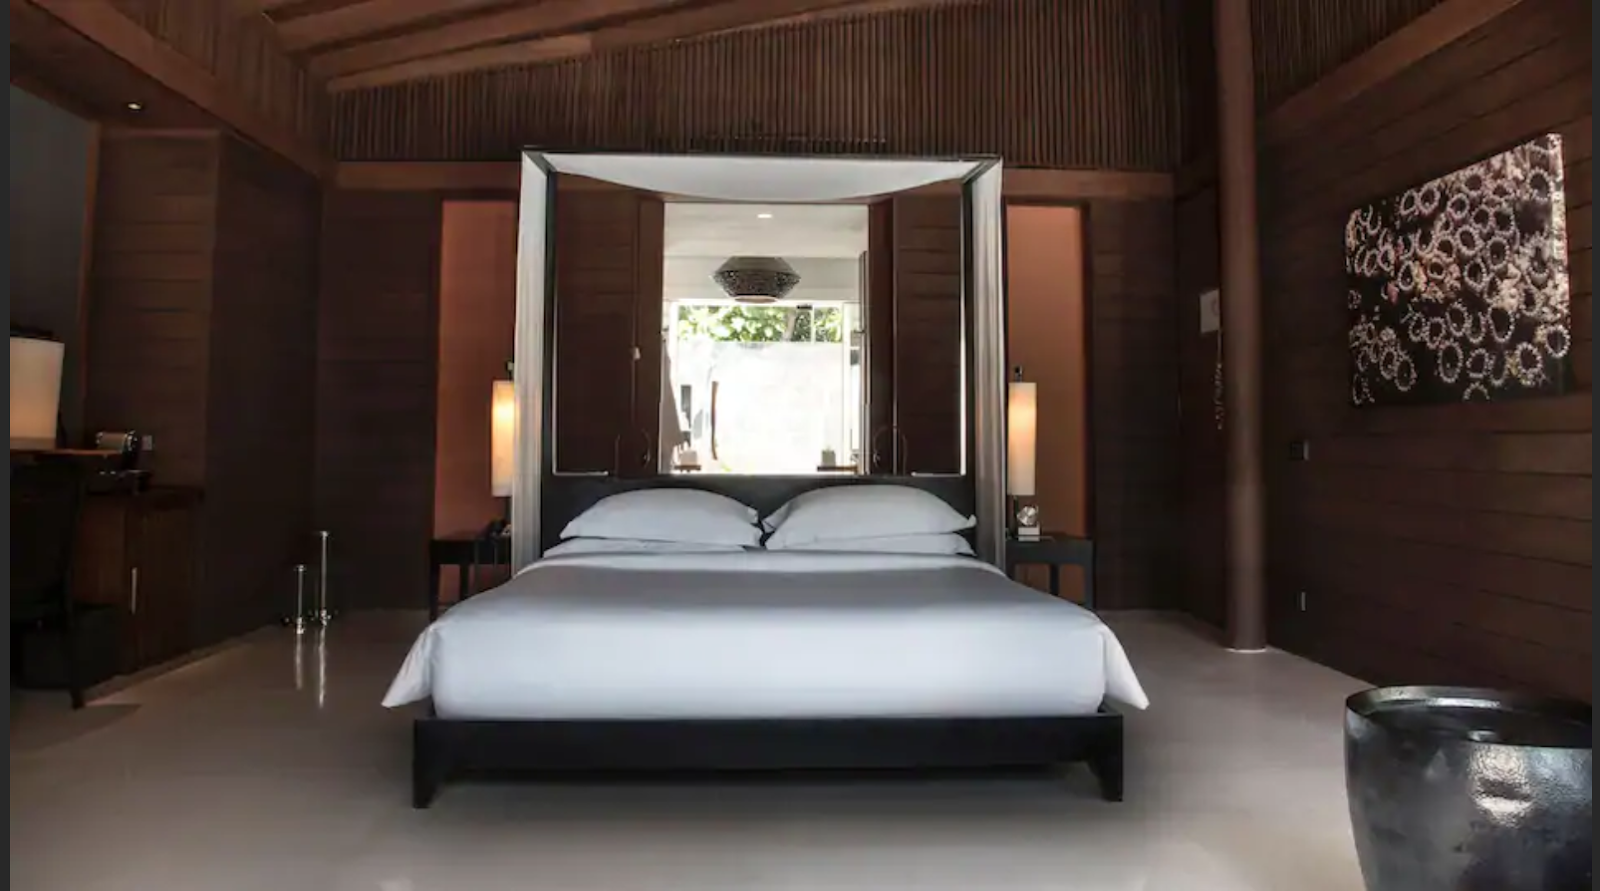 Park Villa Hyatt Maldives room